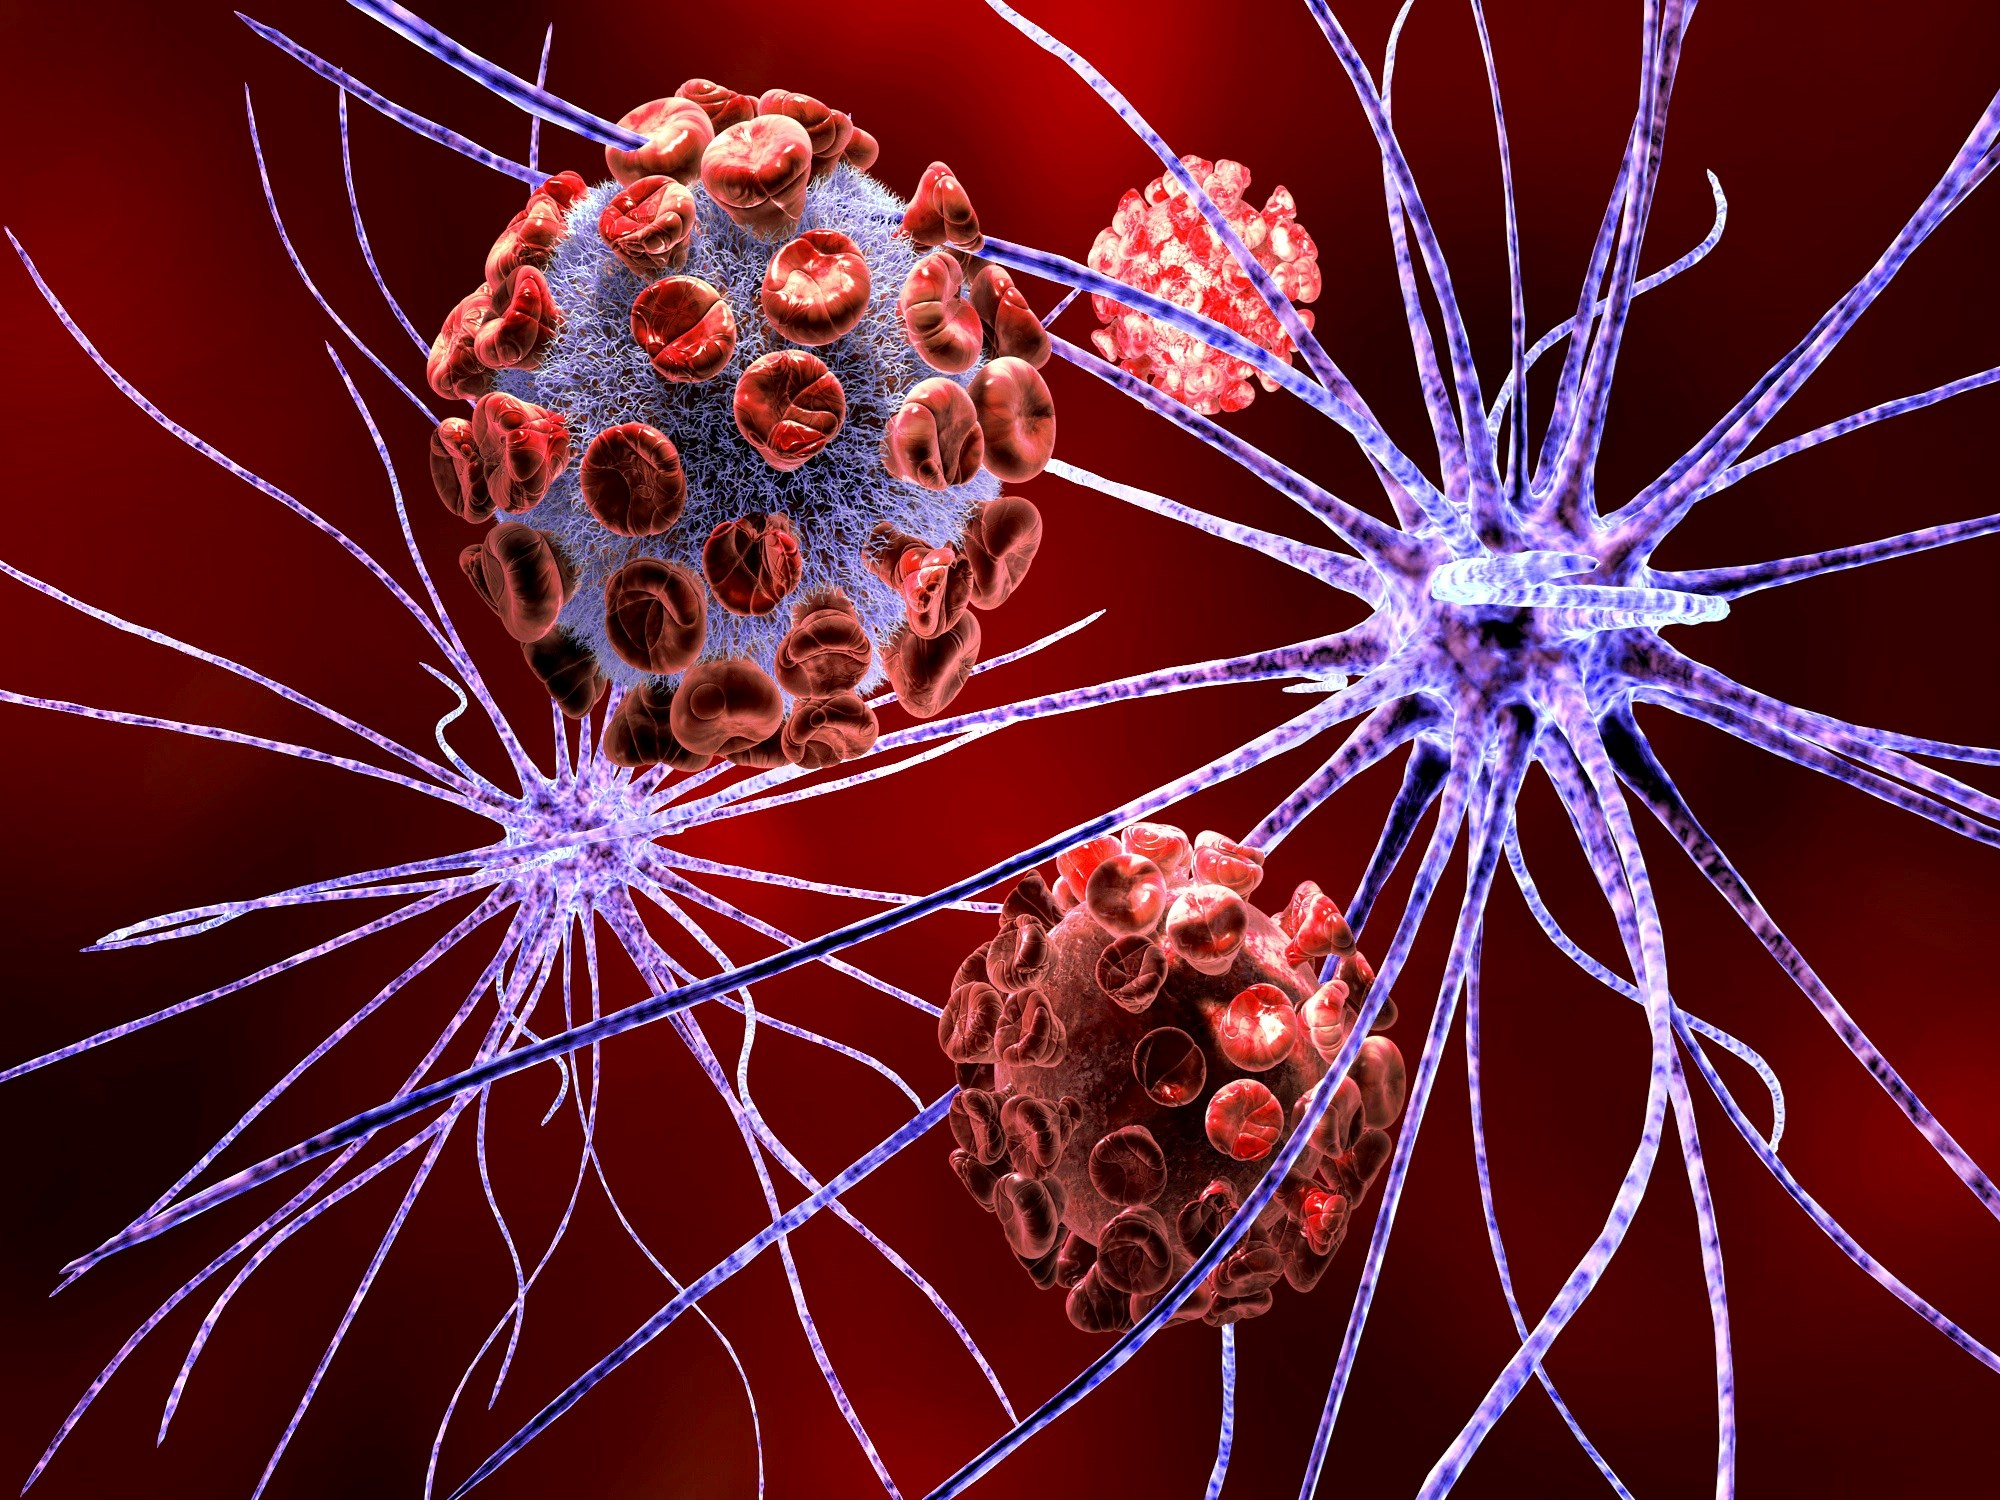 The study presents novel evidence linking the activity of specific viruses with Alzheimer disease.